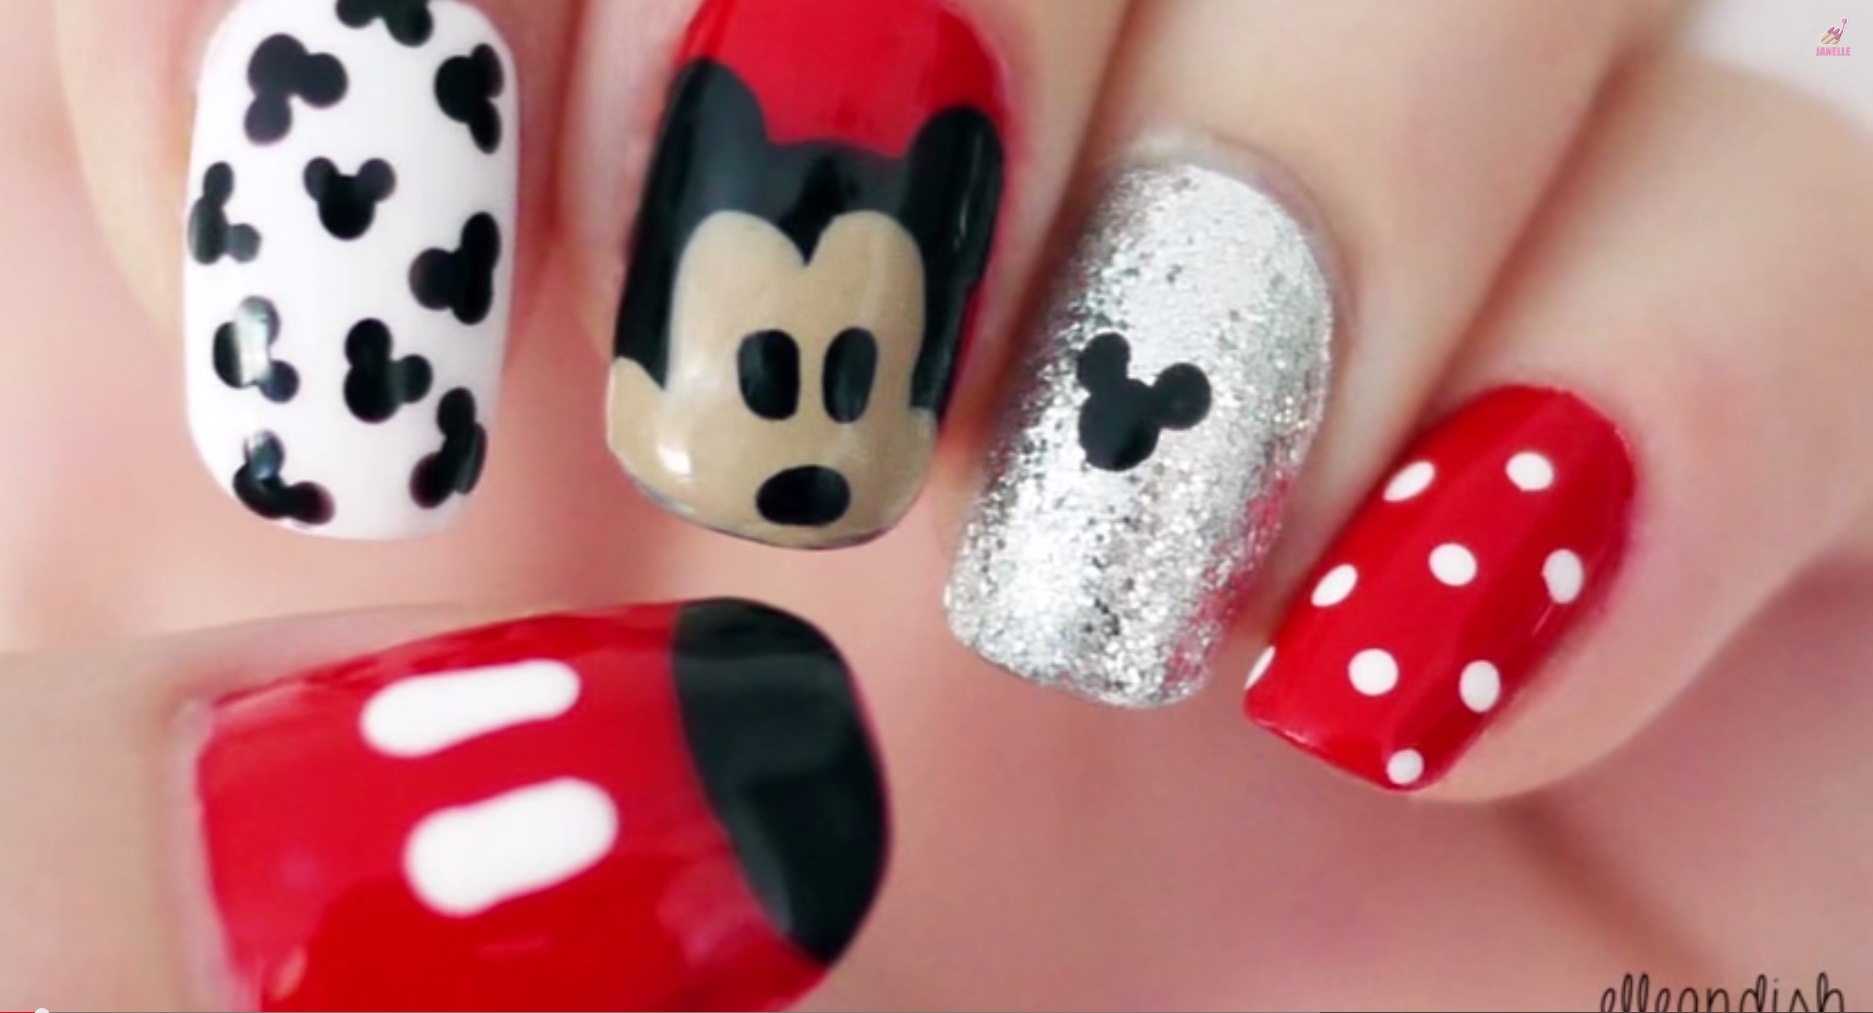 Cute Nail Art Dailymotion The Best Inspiration For Design And